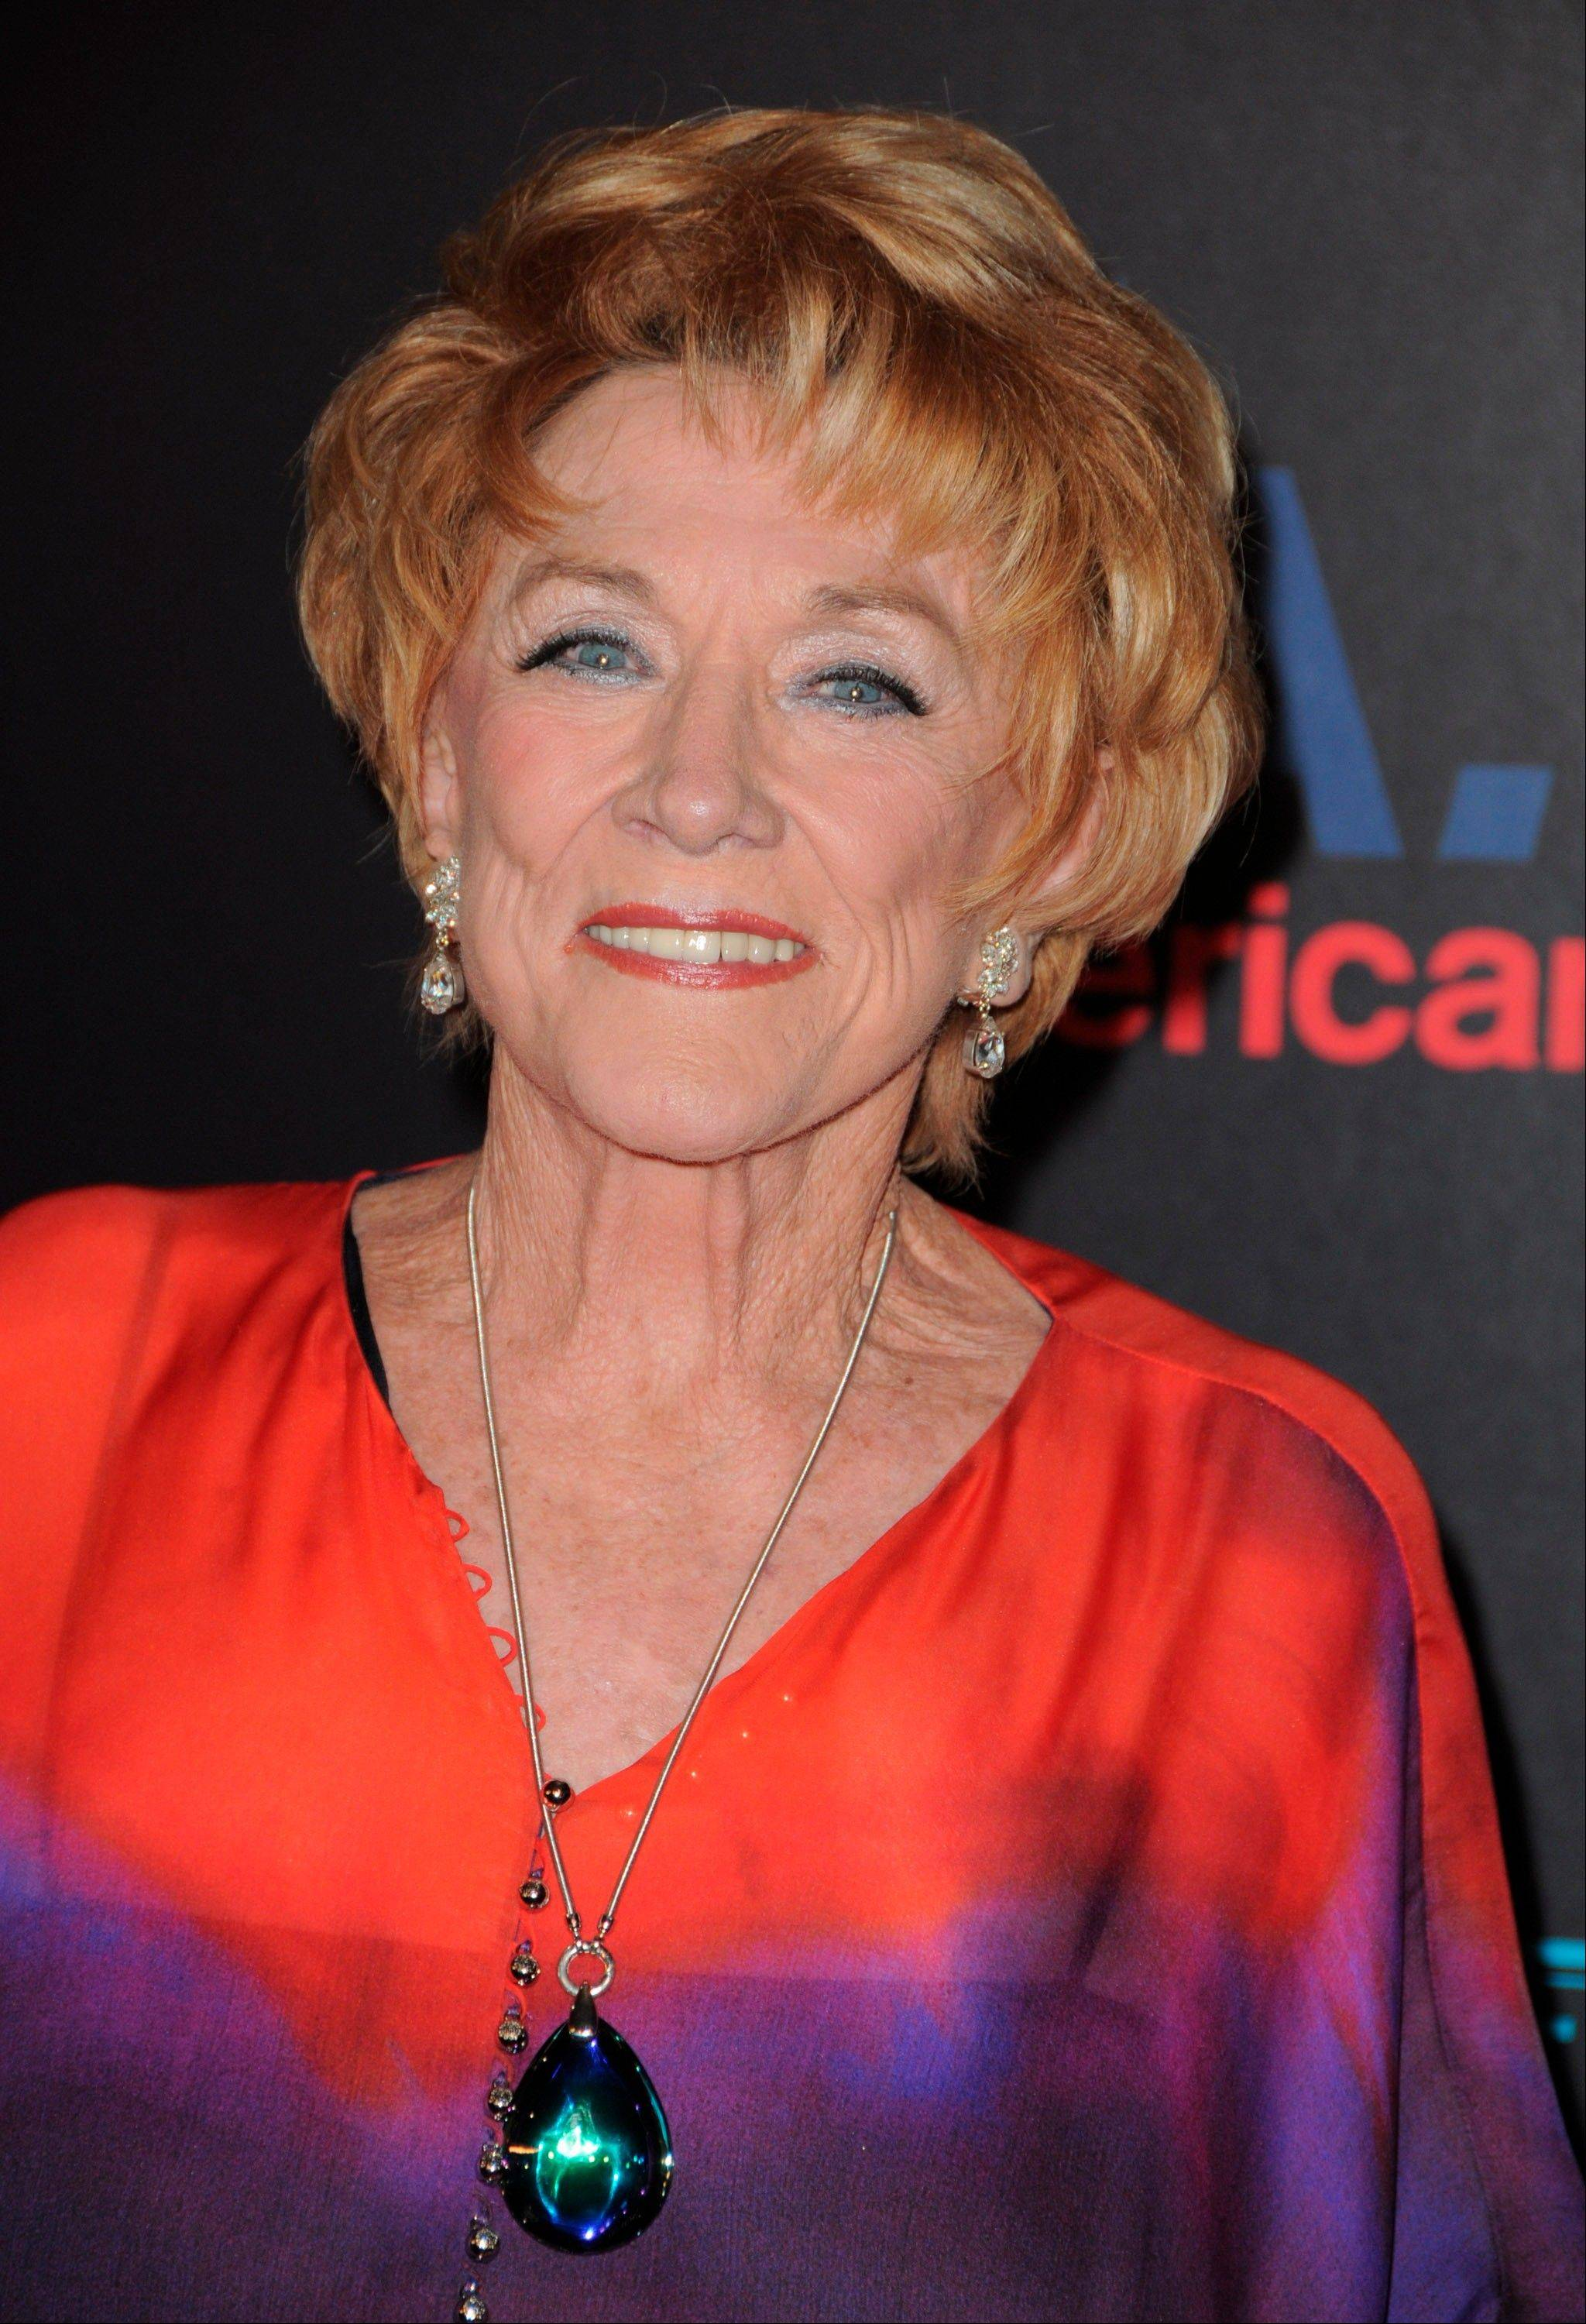 Soap opera star Jeanne Cooper has died at age 84.